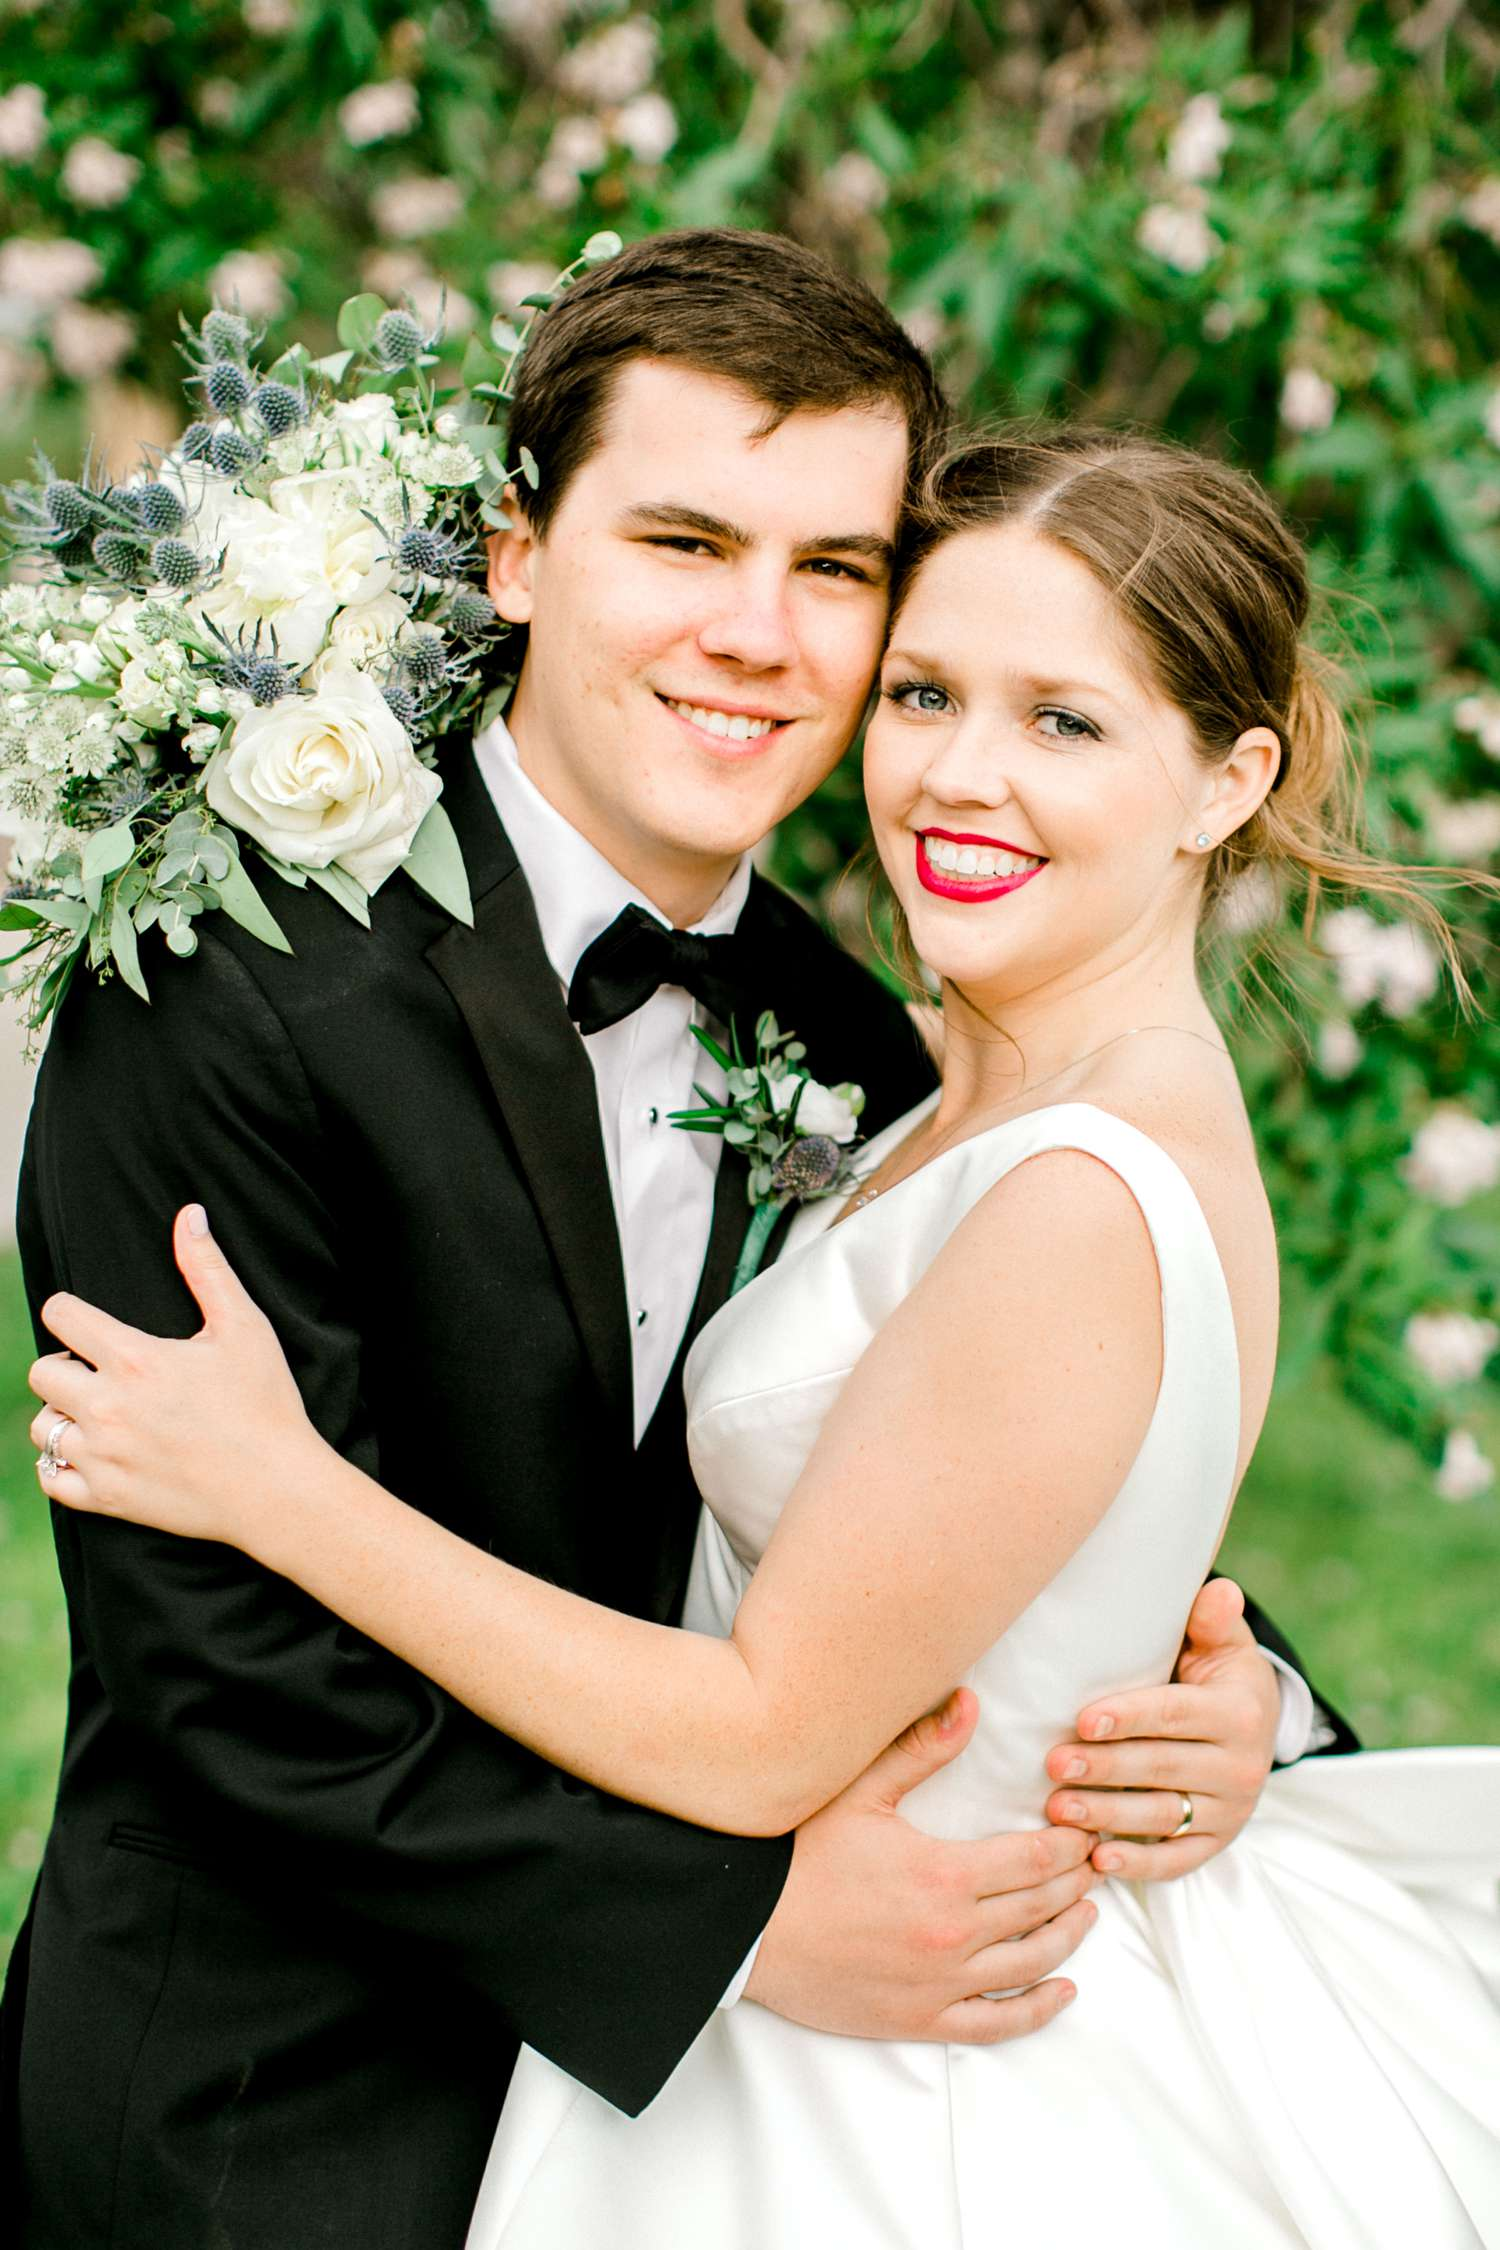 HANNAH+CRAIG+CHILDS+TEXAS+TECH+WEDDING+ALLEEJ+LUBBOCK+PHOTOGRAPHER_0098.jpg